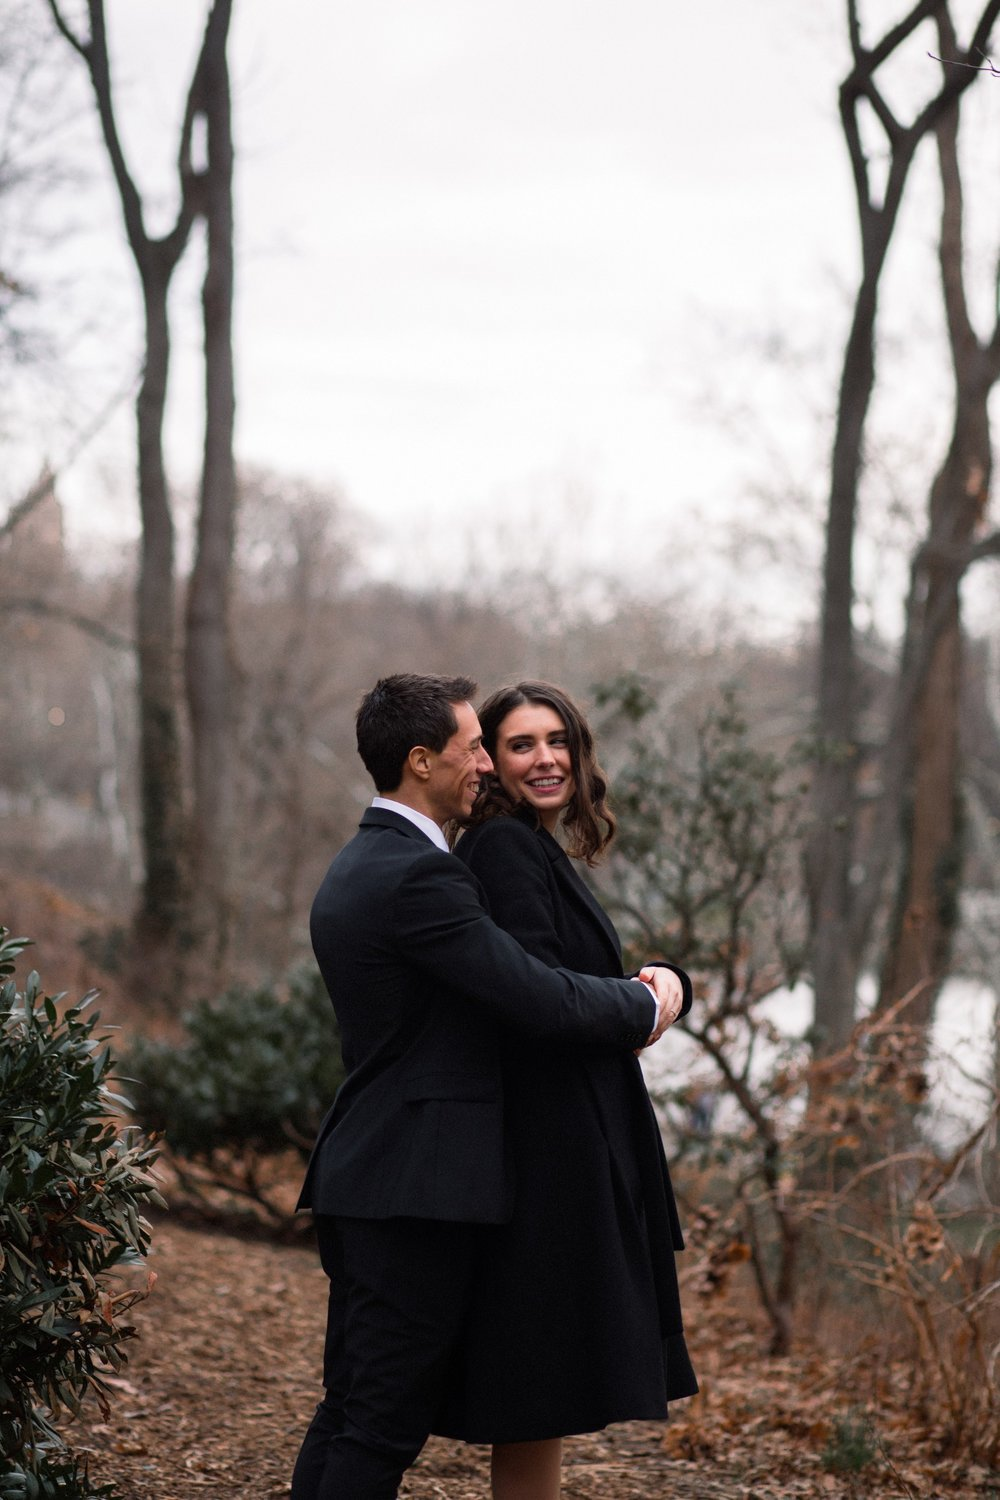 jose-melgarejo-engagement-nyc-central-park-winter-150.jpg